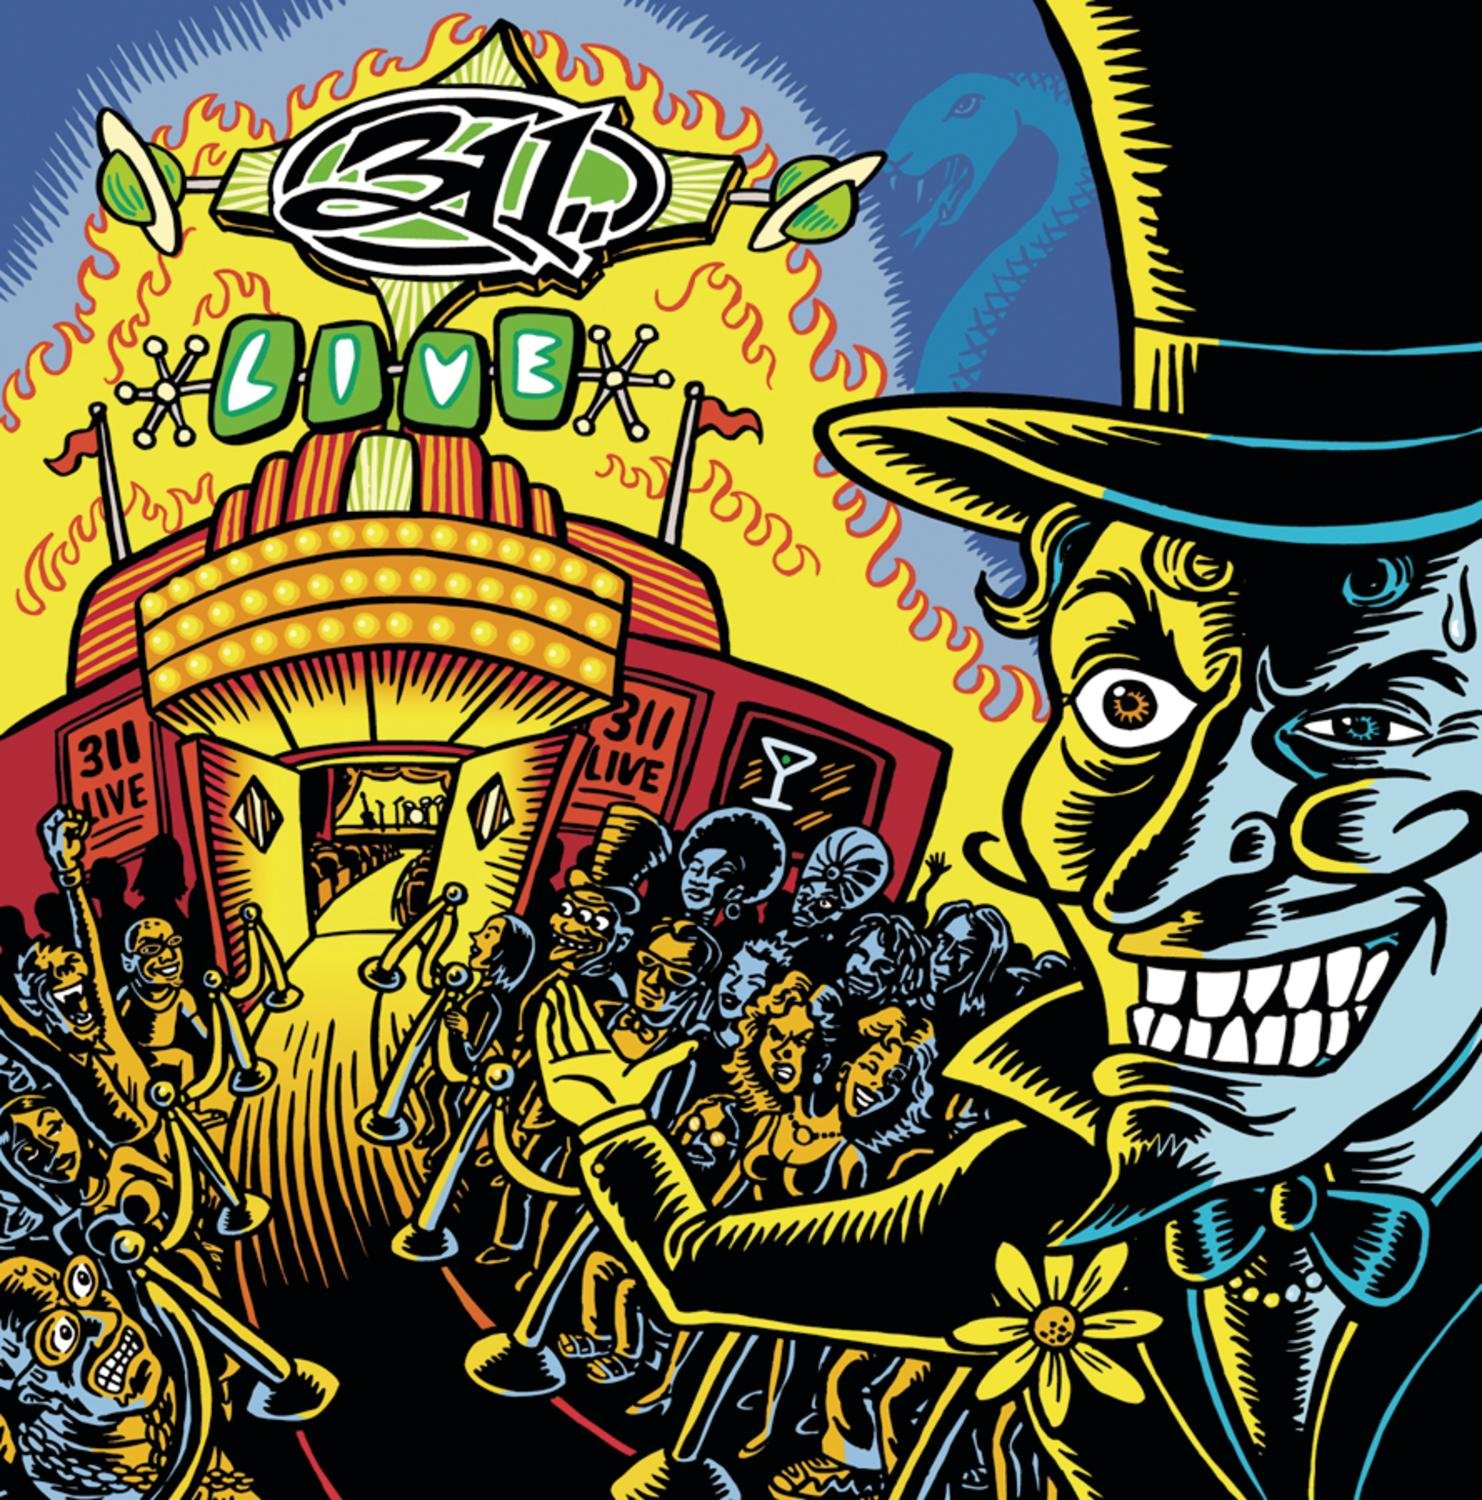 311 Live by Sony Legacy